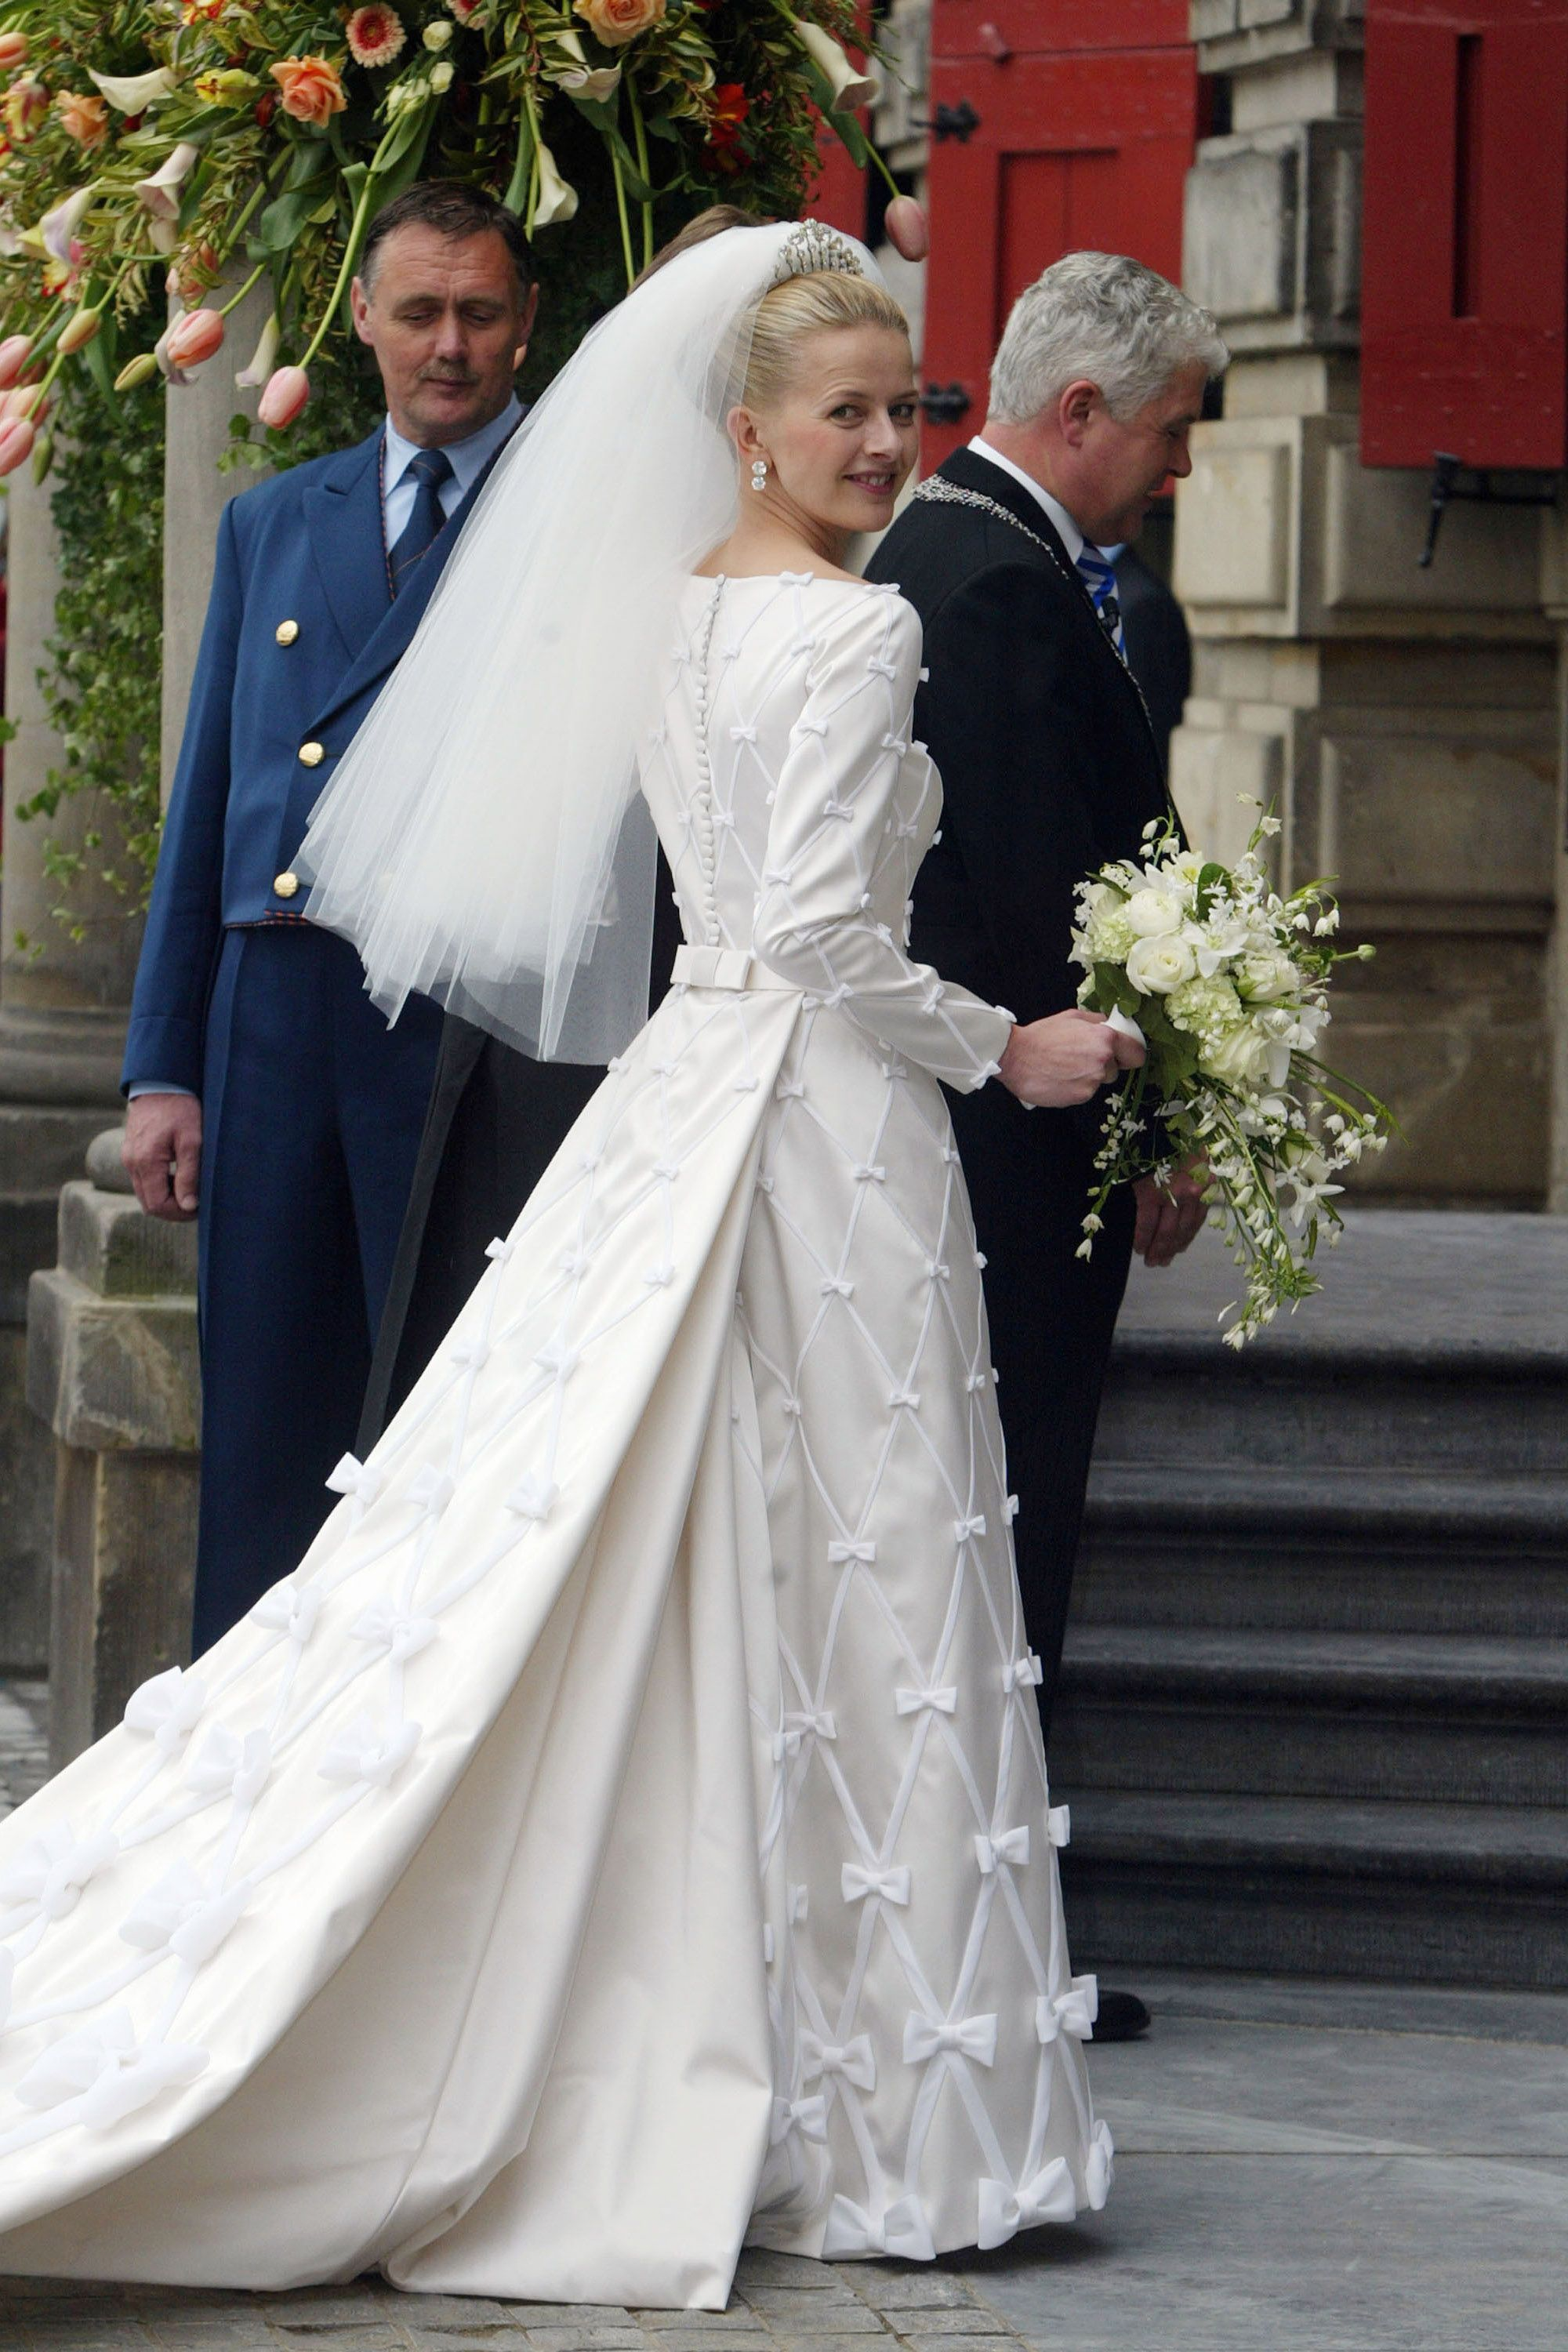 The Most Iconic Royal Wedding Gowns of All Time | Dutch ...